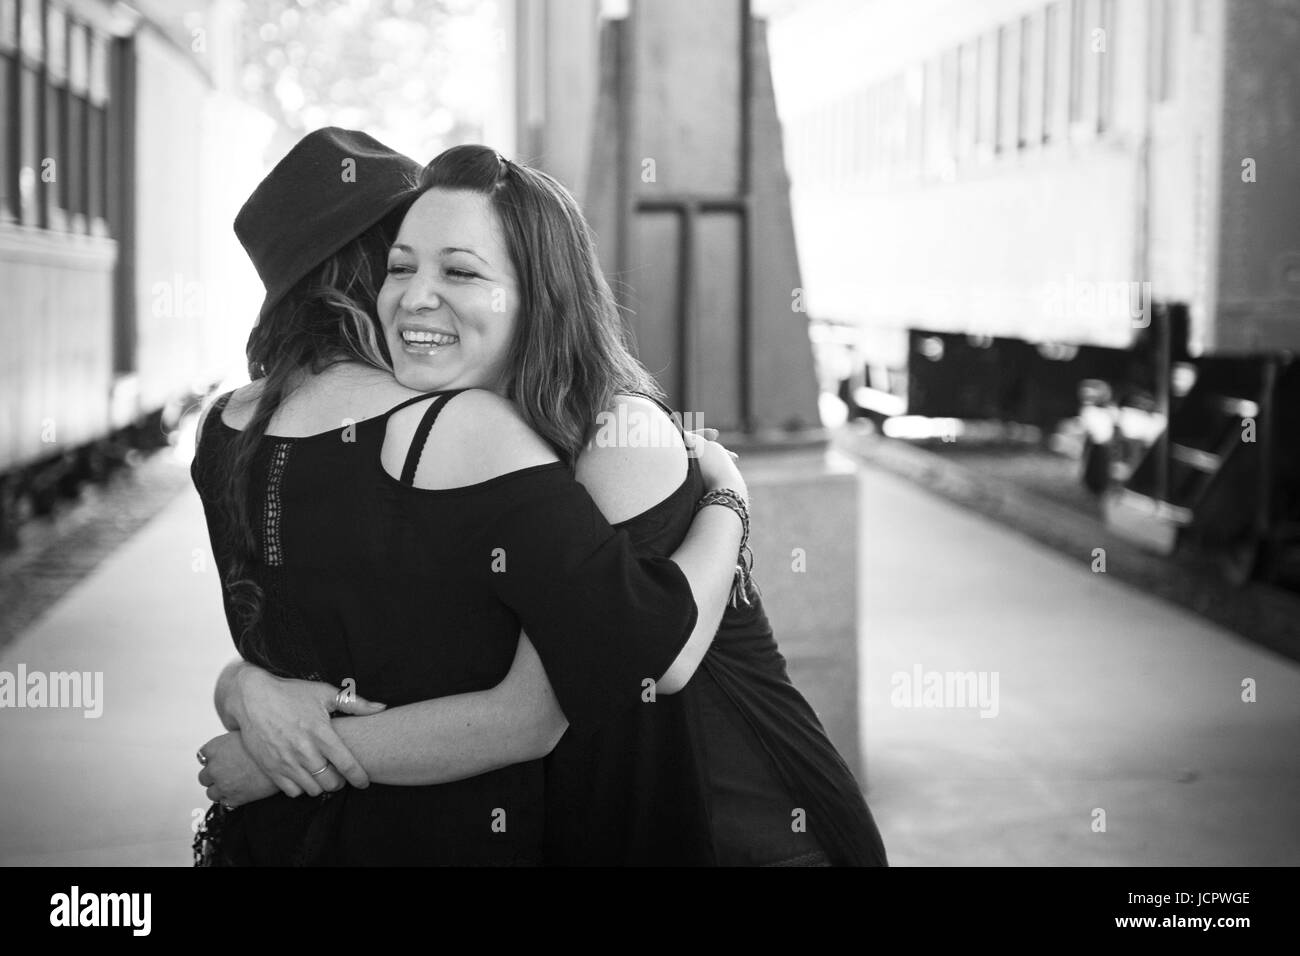 Black clear all filters page 1 of 3 reunited friends hugging at train station stock image